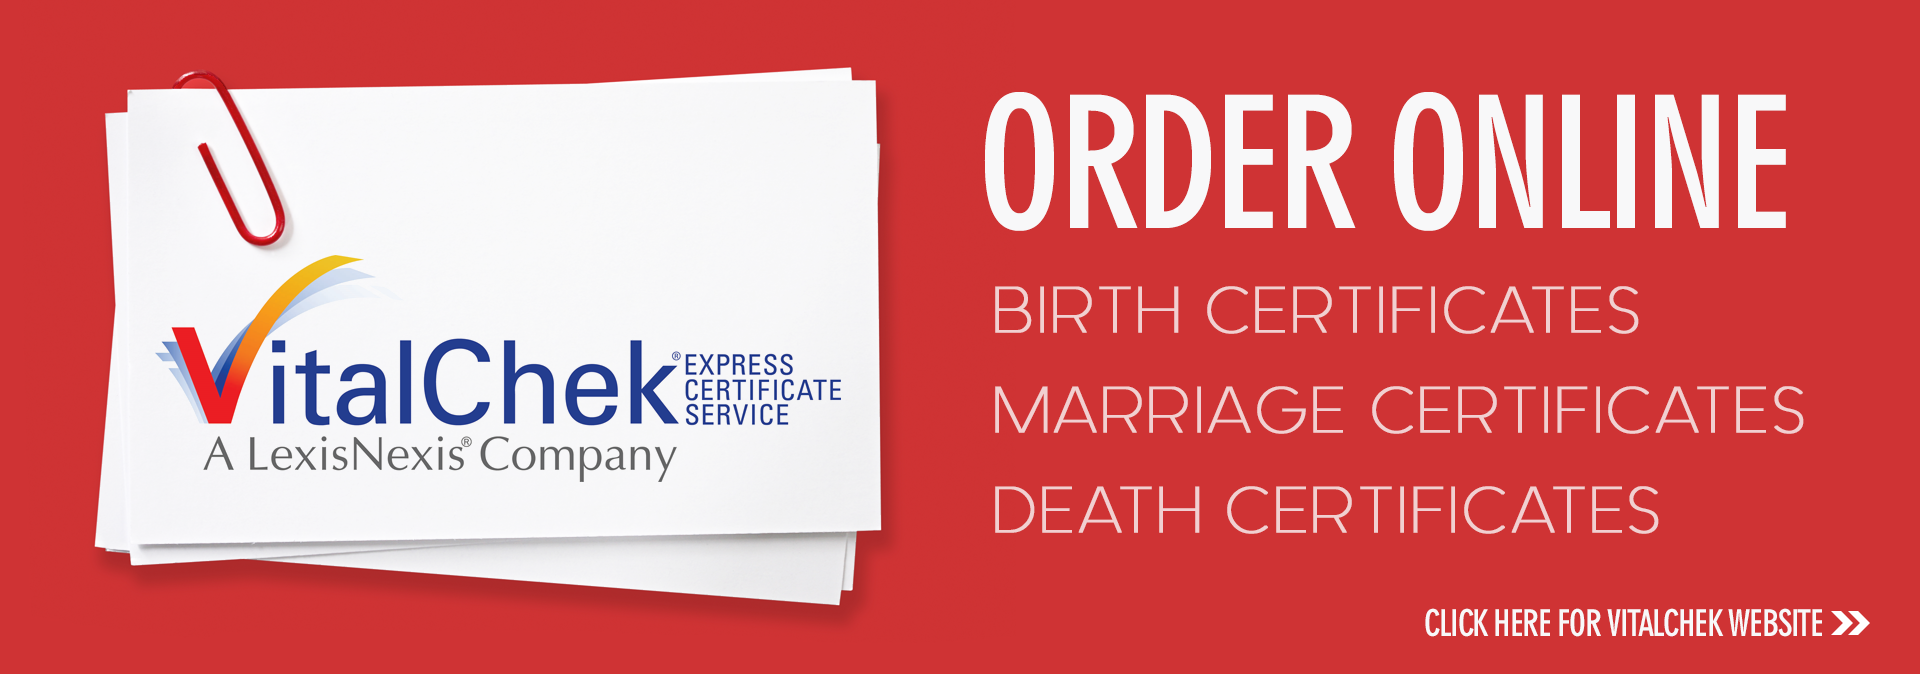 VitalChek Online Ordering of Birth, Death and Marriage Certificates